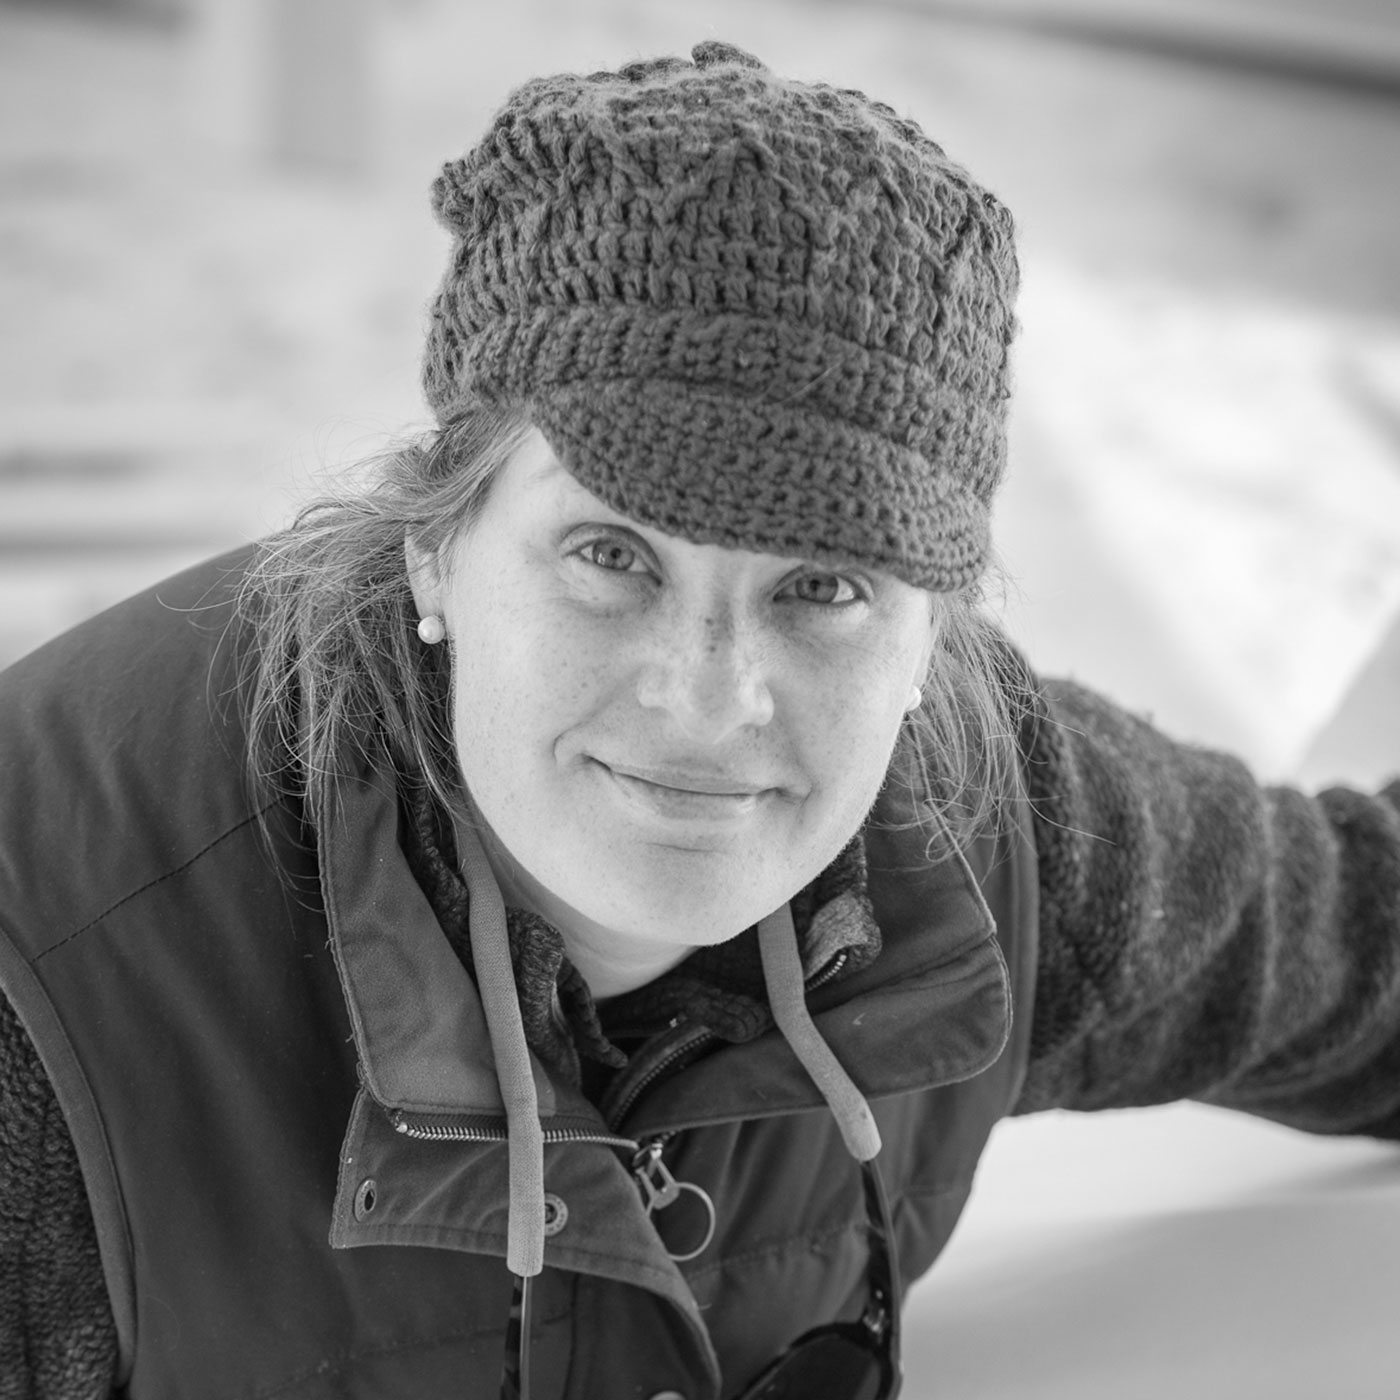 Leah Lippmann is a Maine and New Hampshire Licensed Architect and Senior Interior Designer for Knickerbocker Group